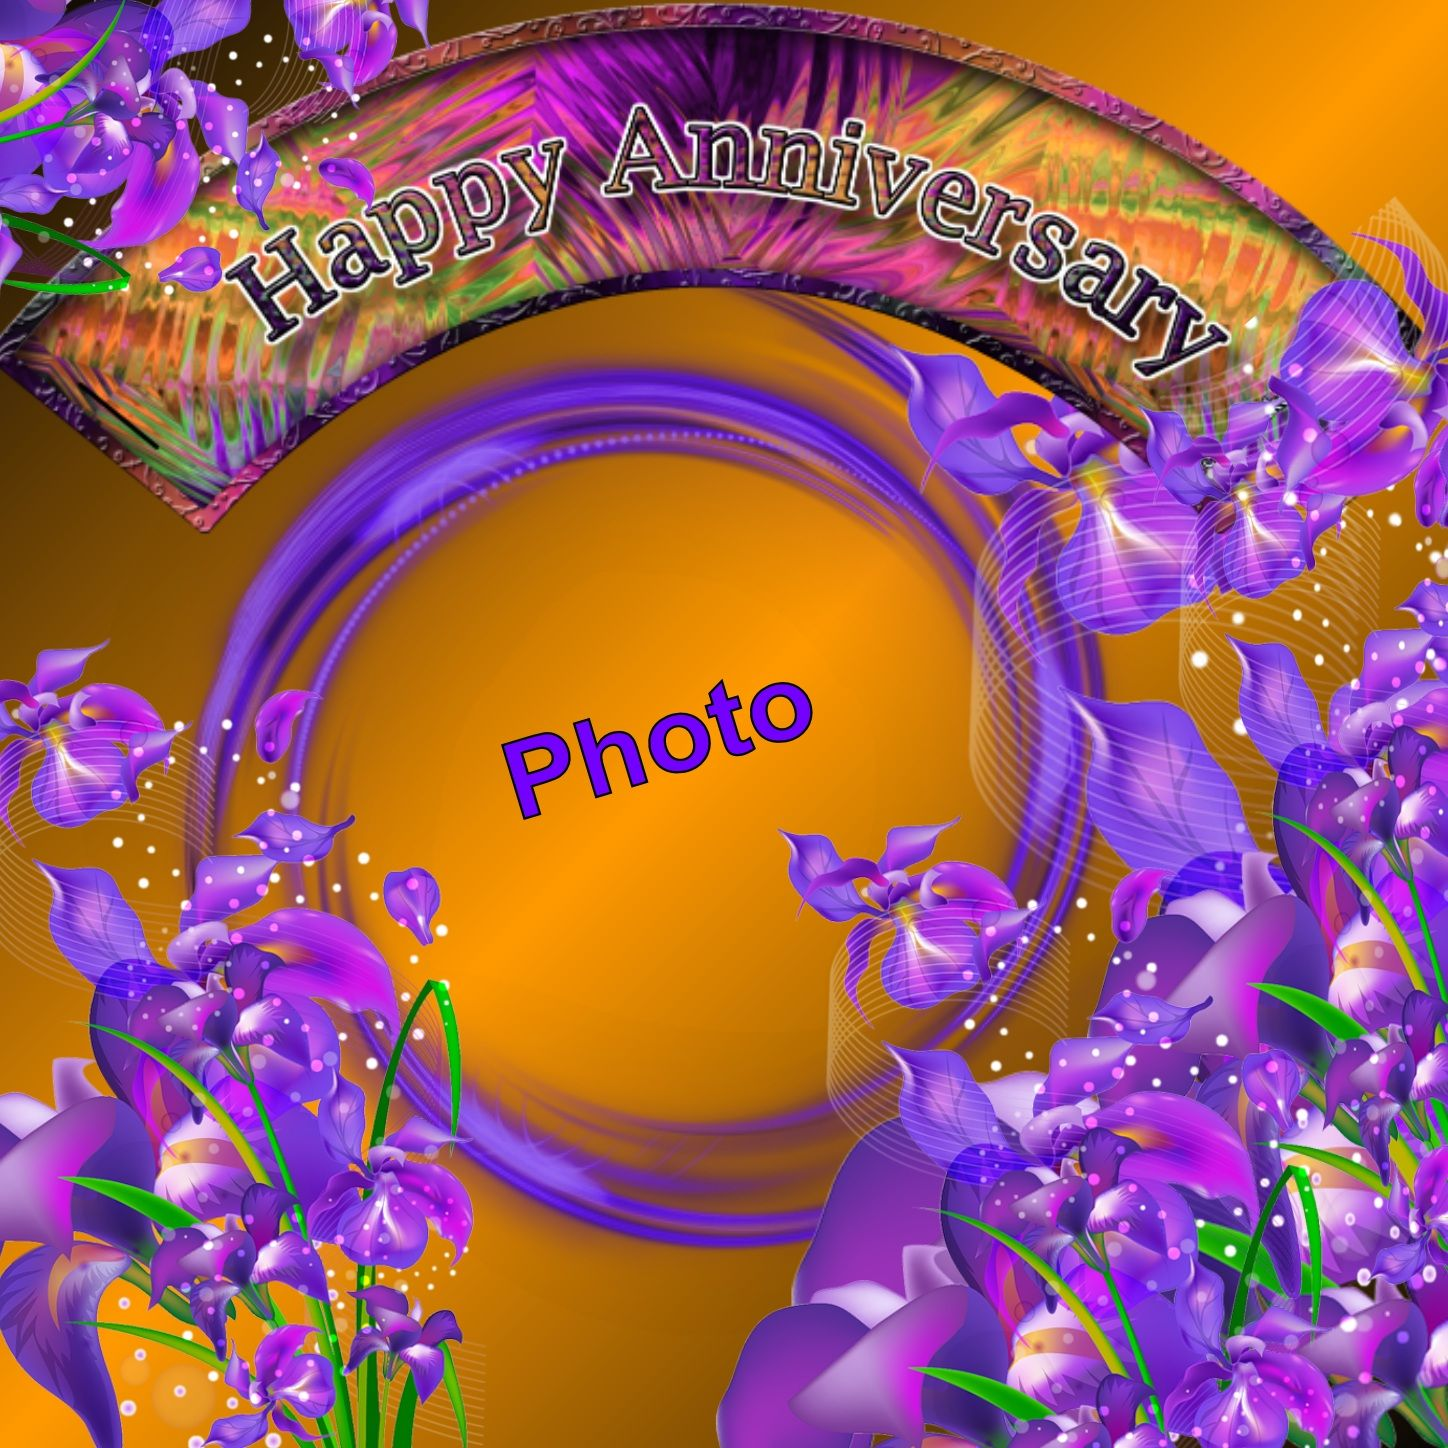 Imikimi Zo Marriage Frames Happy Anniversary Tammybrantley Mr And